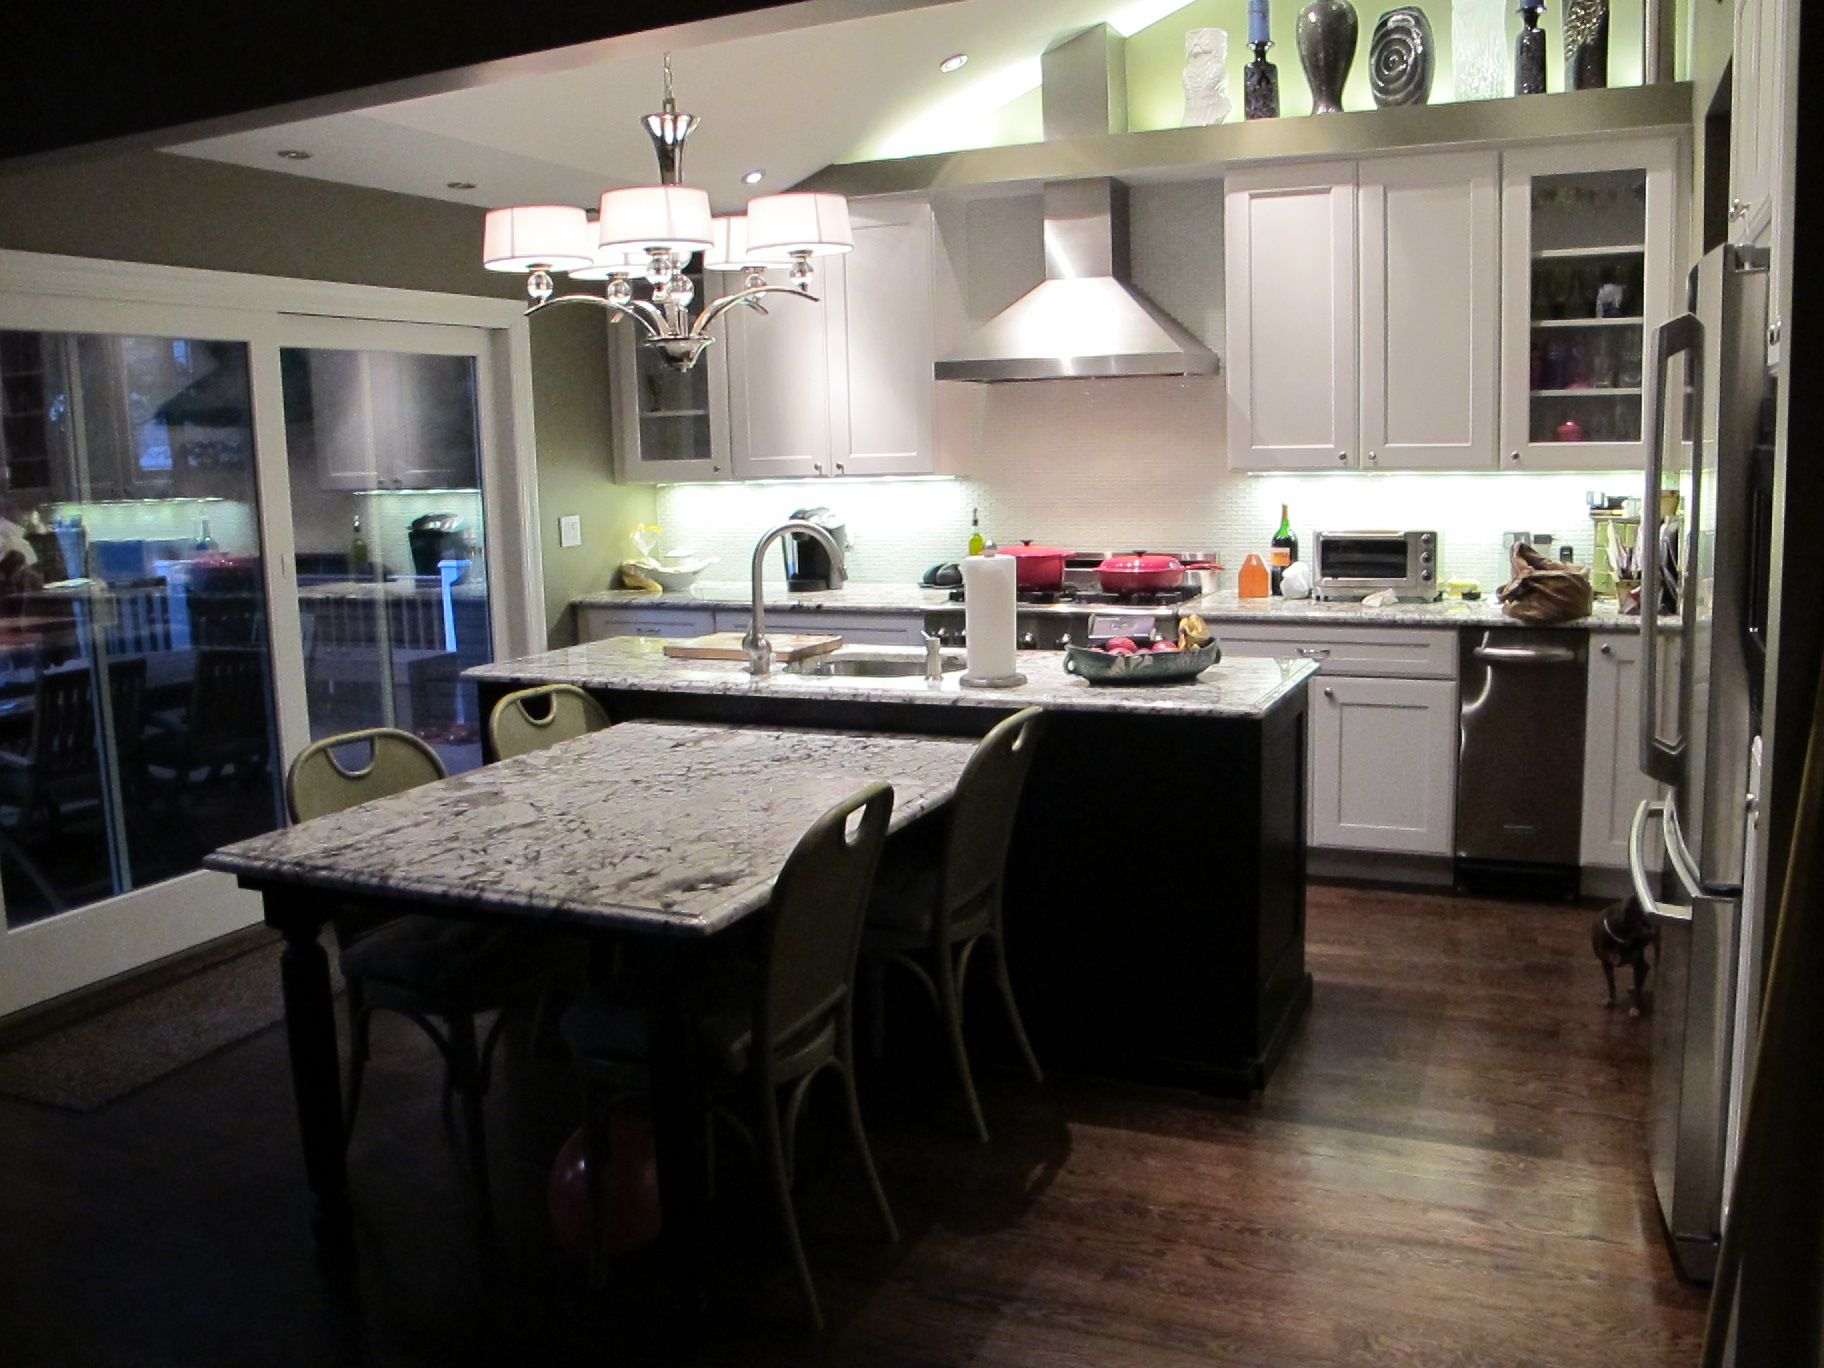 Suburban transitional remodel, photo by Ross Portenoy ...